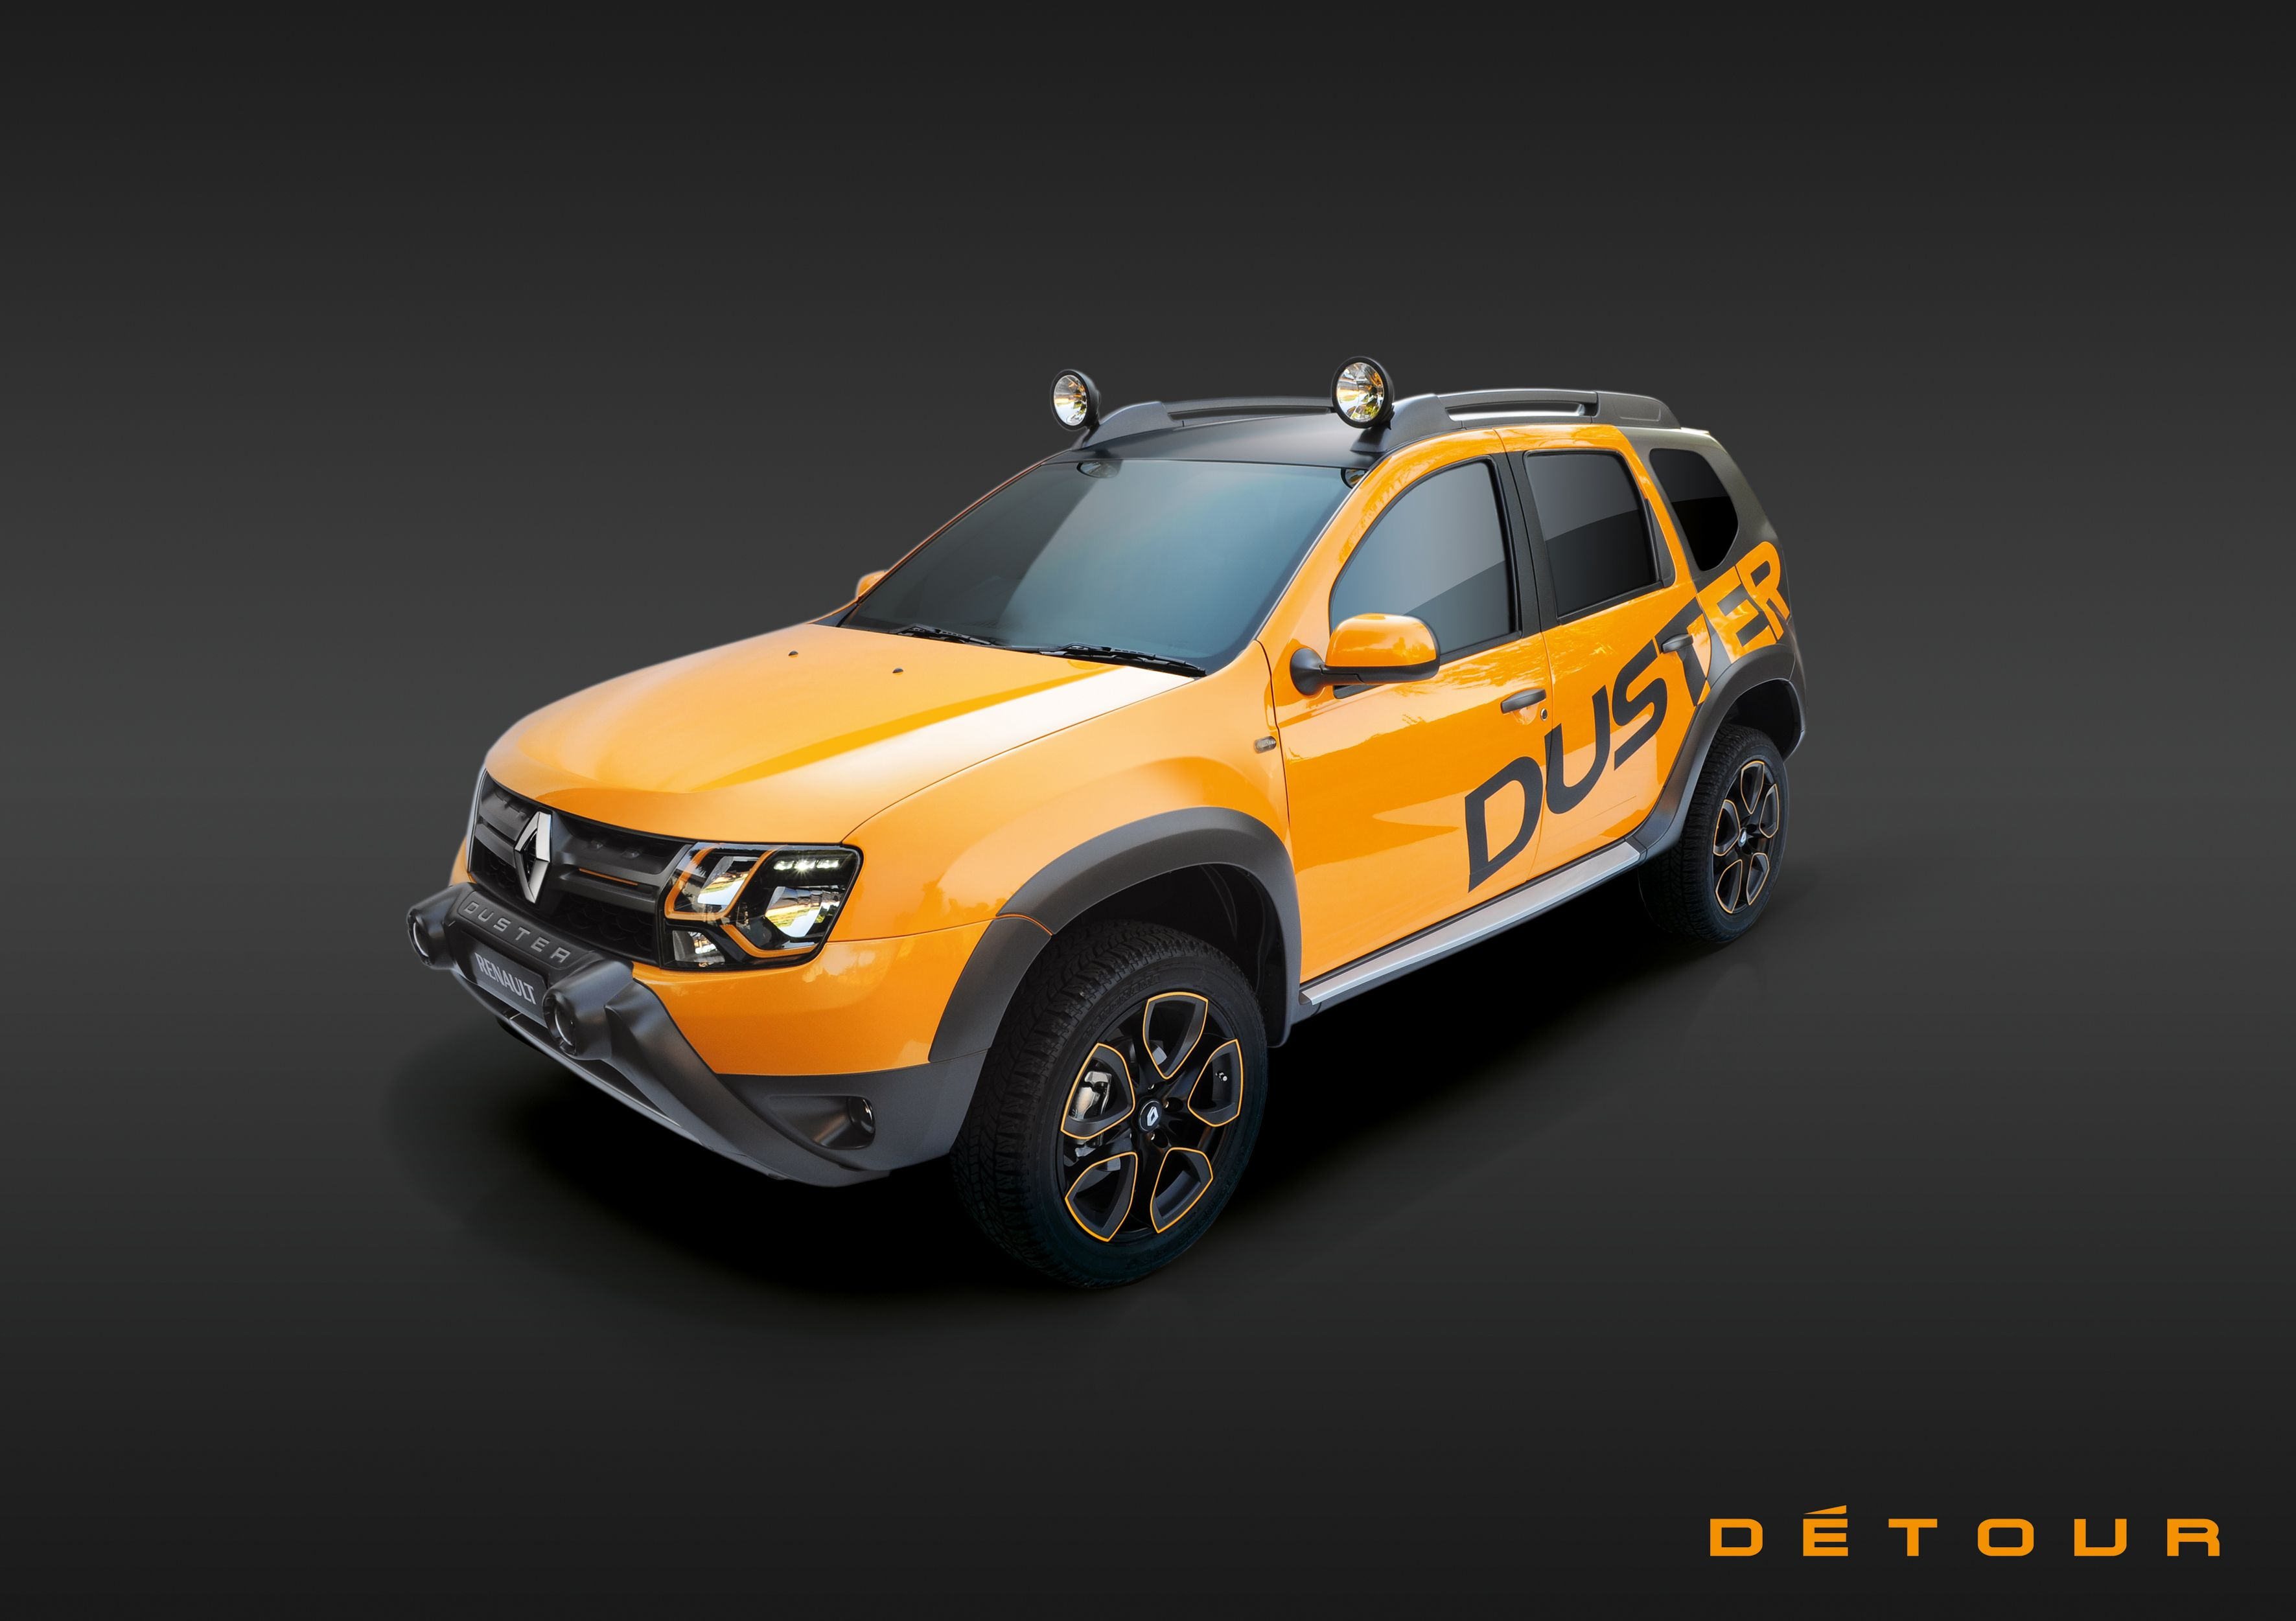 Renault Duster Detour Is The Fruit Of An Intense Collaborative Work Between Renault Design Central Europe And A Specialised South African Design Detoure Duster